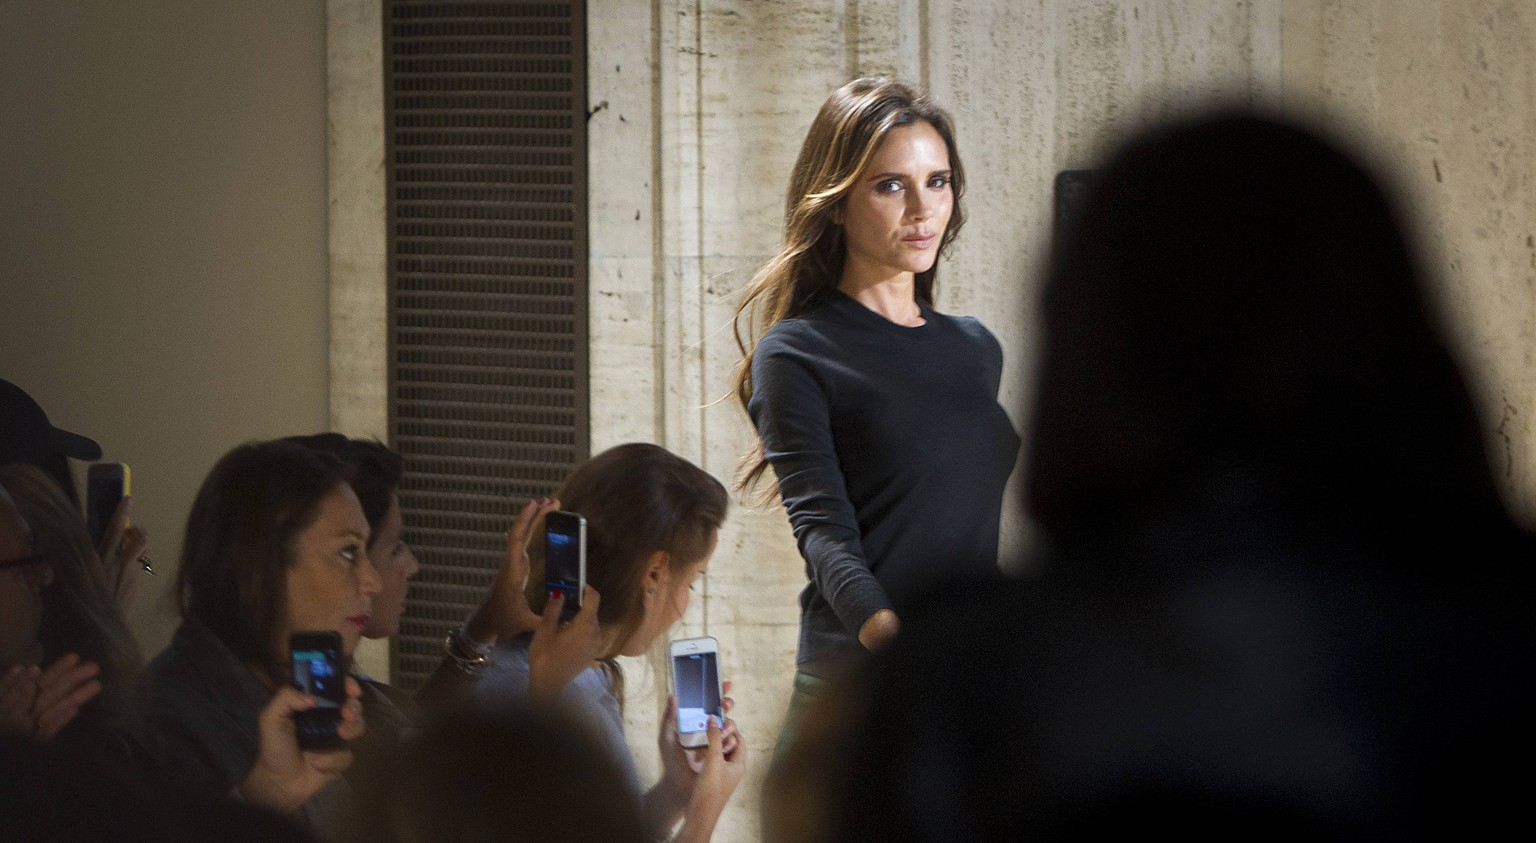 Designer Victoria Beckham walks onto the runway following her Spring/Summer 2015 collection show during New York Fashion Week in the Manhattan borough of New York September 7, 2014.    REUTERS/Carlo Allegri (UNITED STATES - Tags: FASHION ENTERTAINMENT PROFILE)